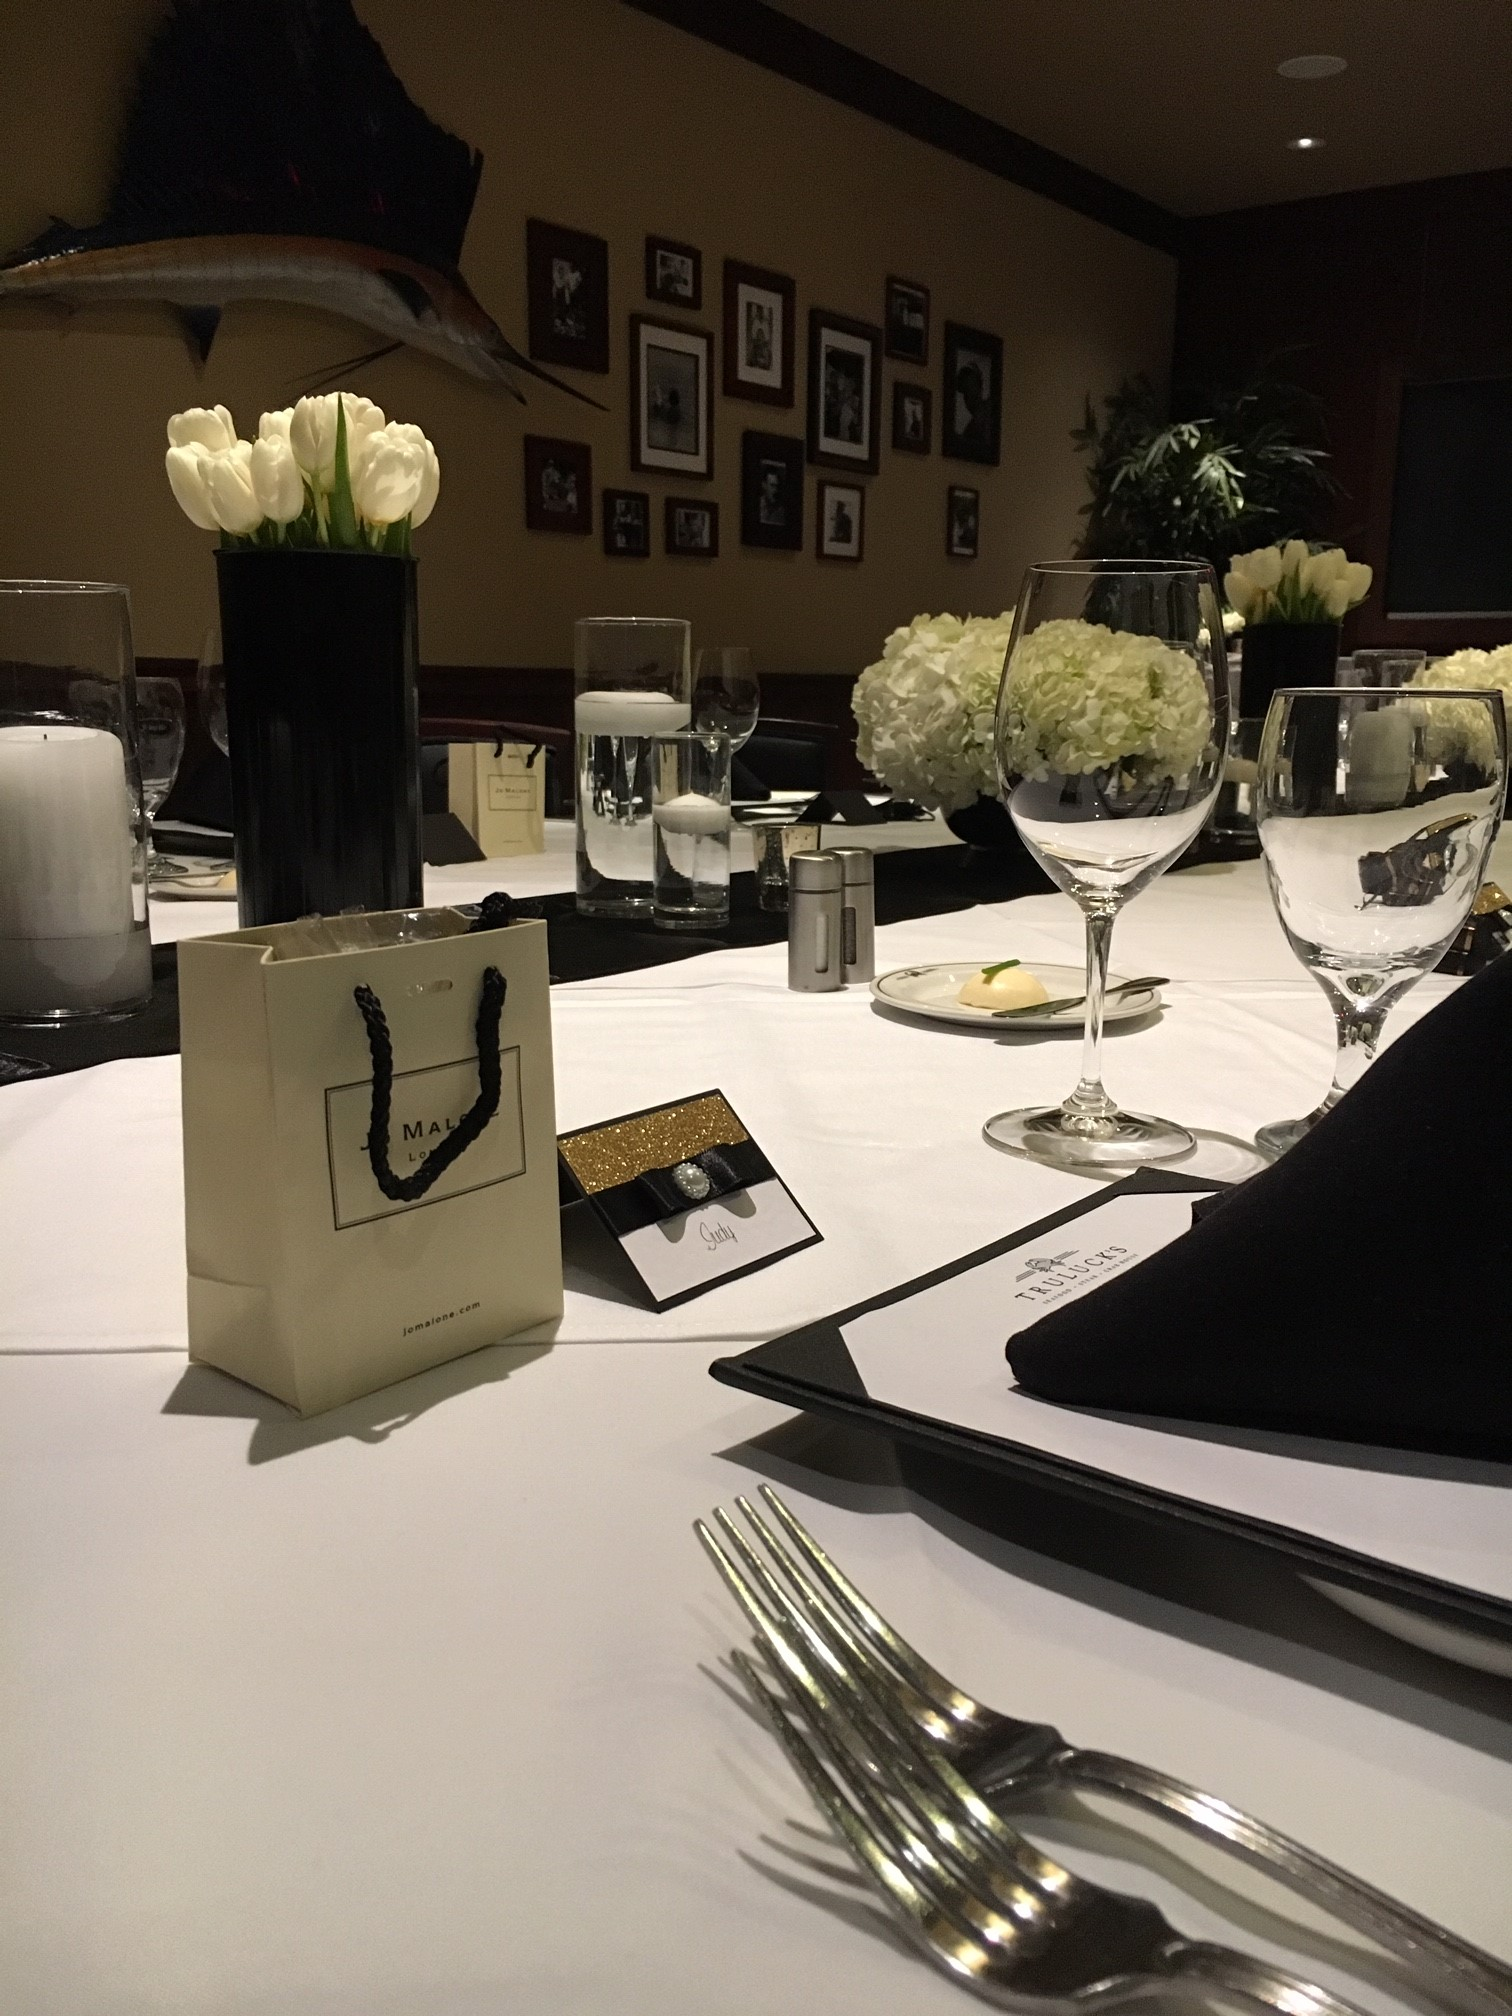 Dallas private dining room decorated with white tulips and white hydrangea